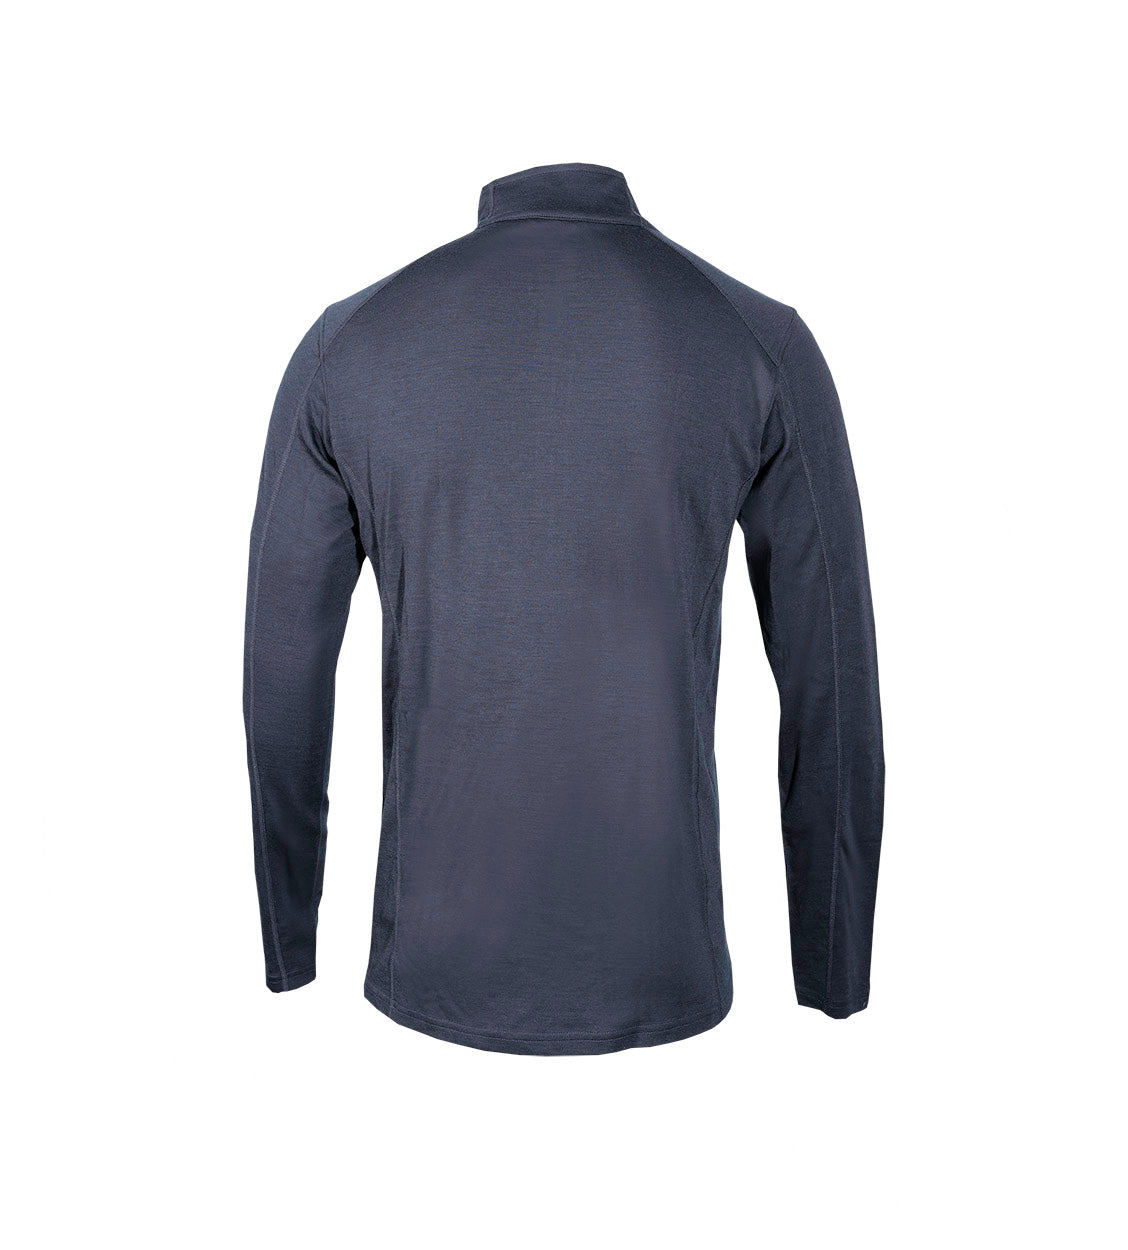 Men's merino wool base layers, Men's Base Layers, Men's long sleeve zip shirt, men's long johns, men's sweater